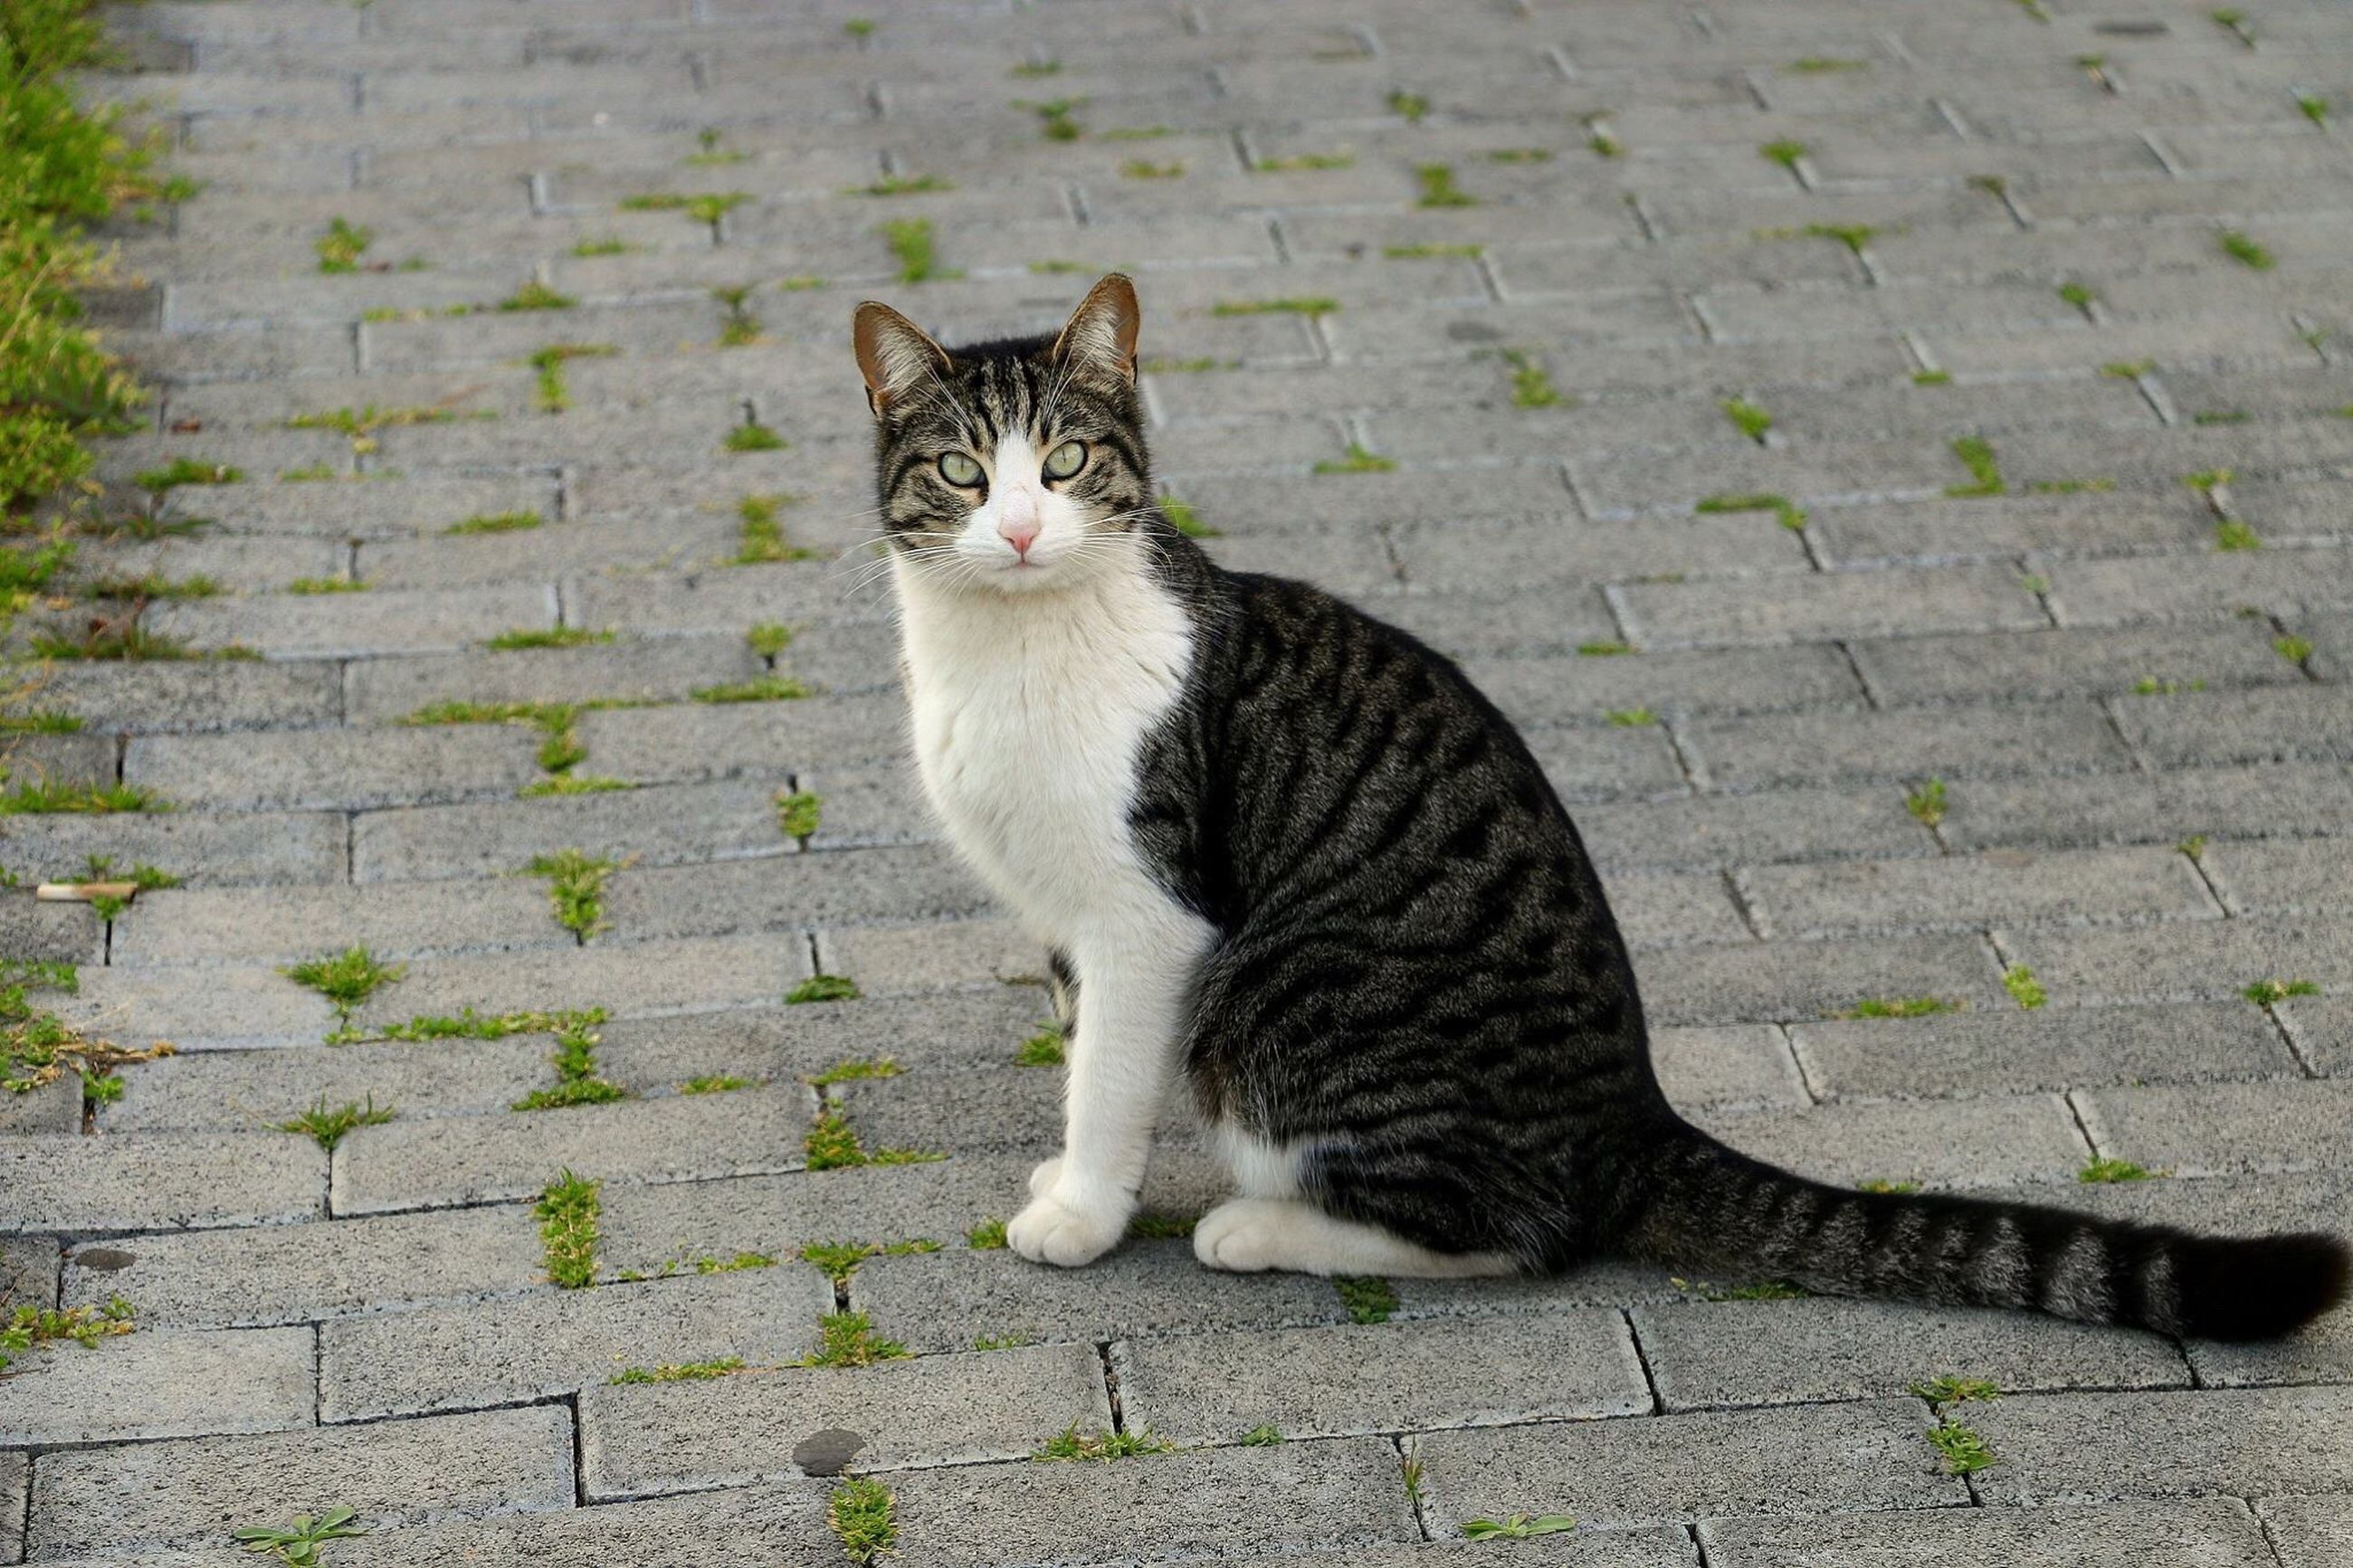 Domestic Cat One Animal Animal Themes Pets Domestic Animals Mammal Feline No People Outdoors Day